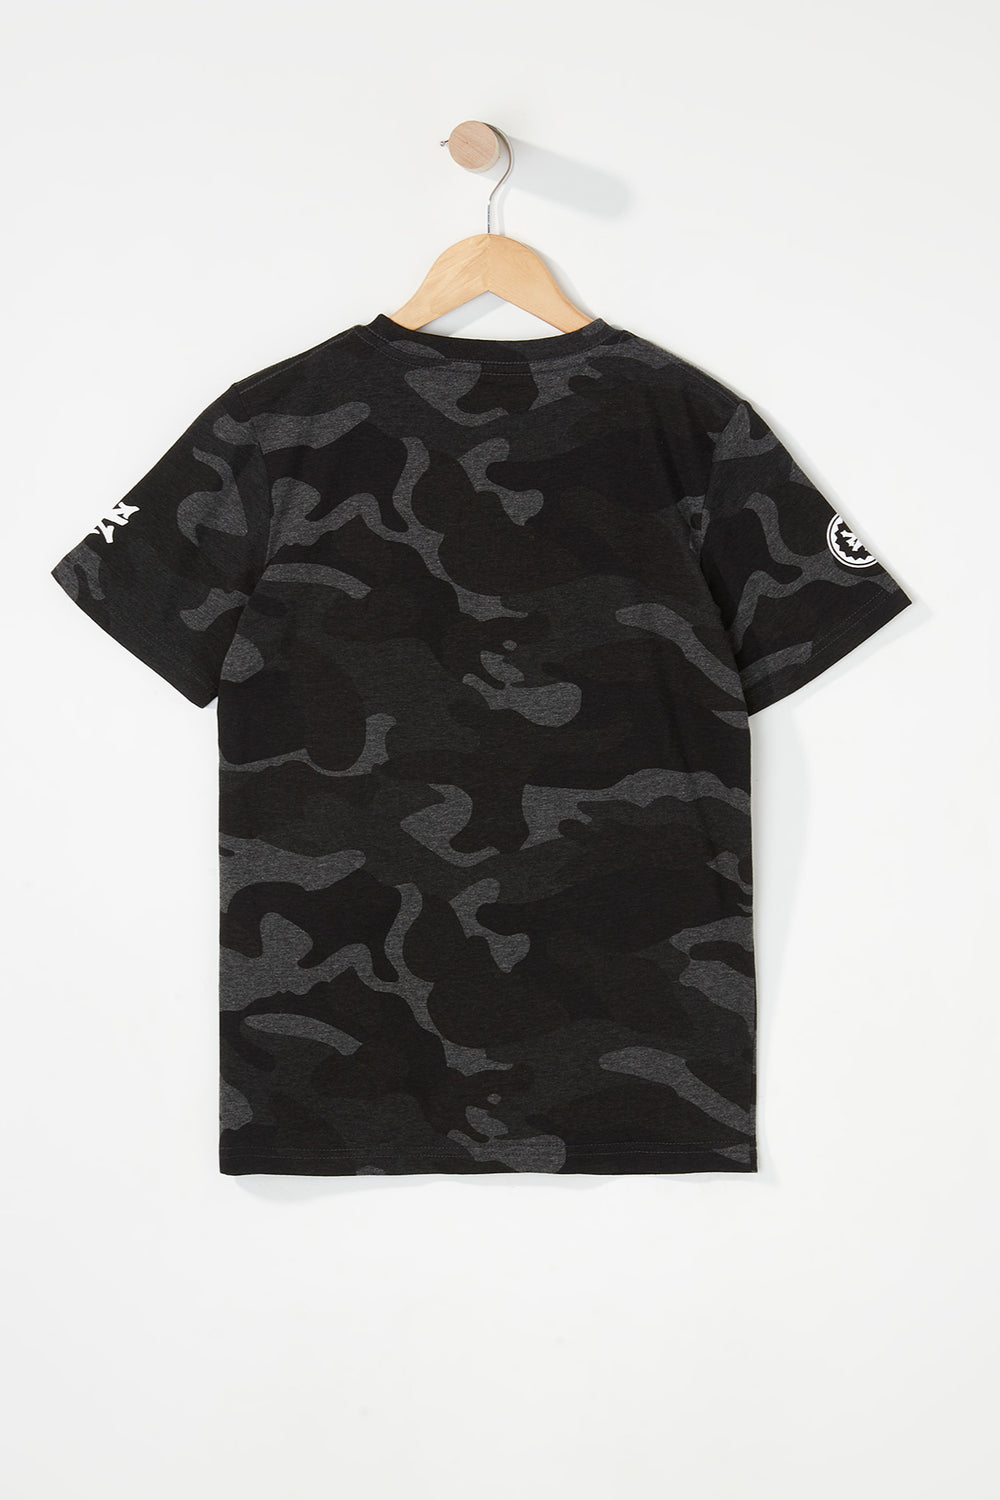 Zoo York Boys Camo Logo T-Shirt Black with White